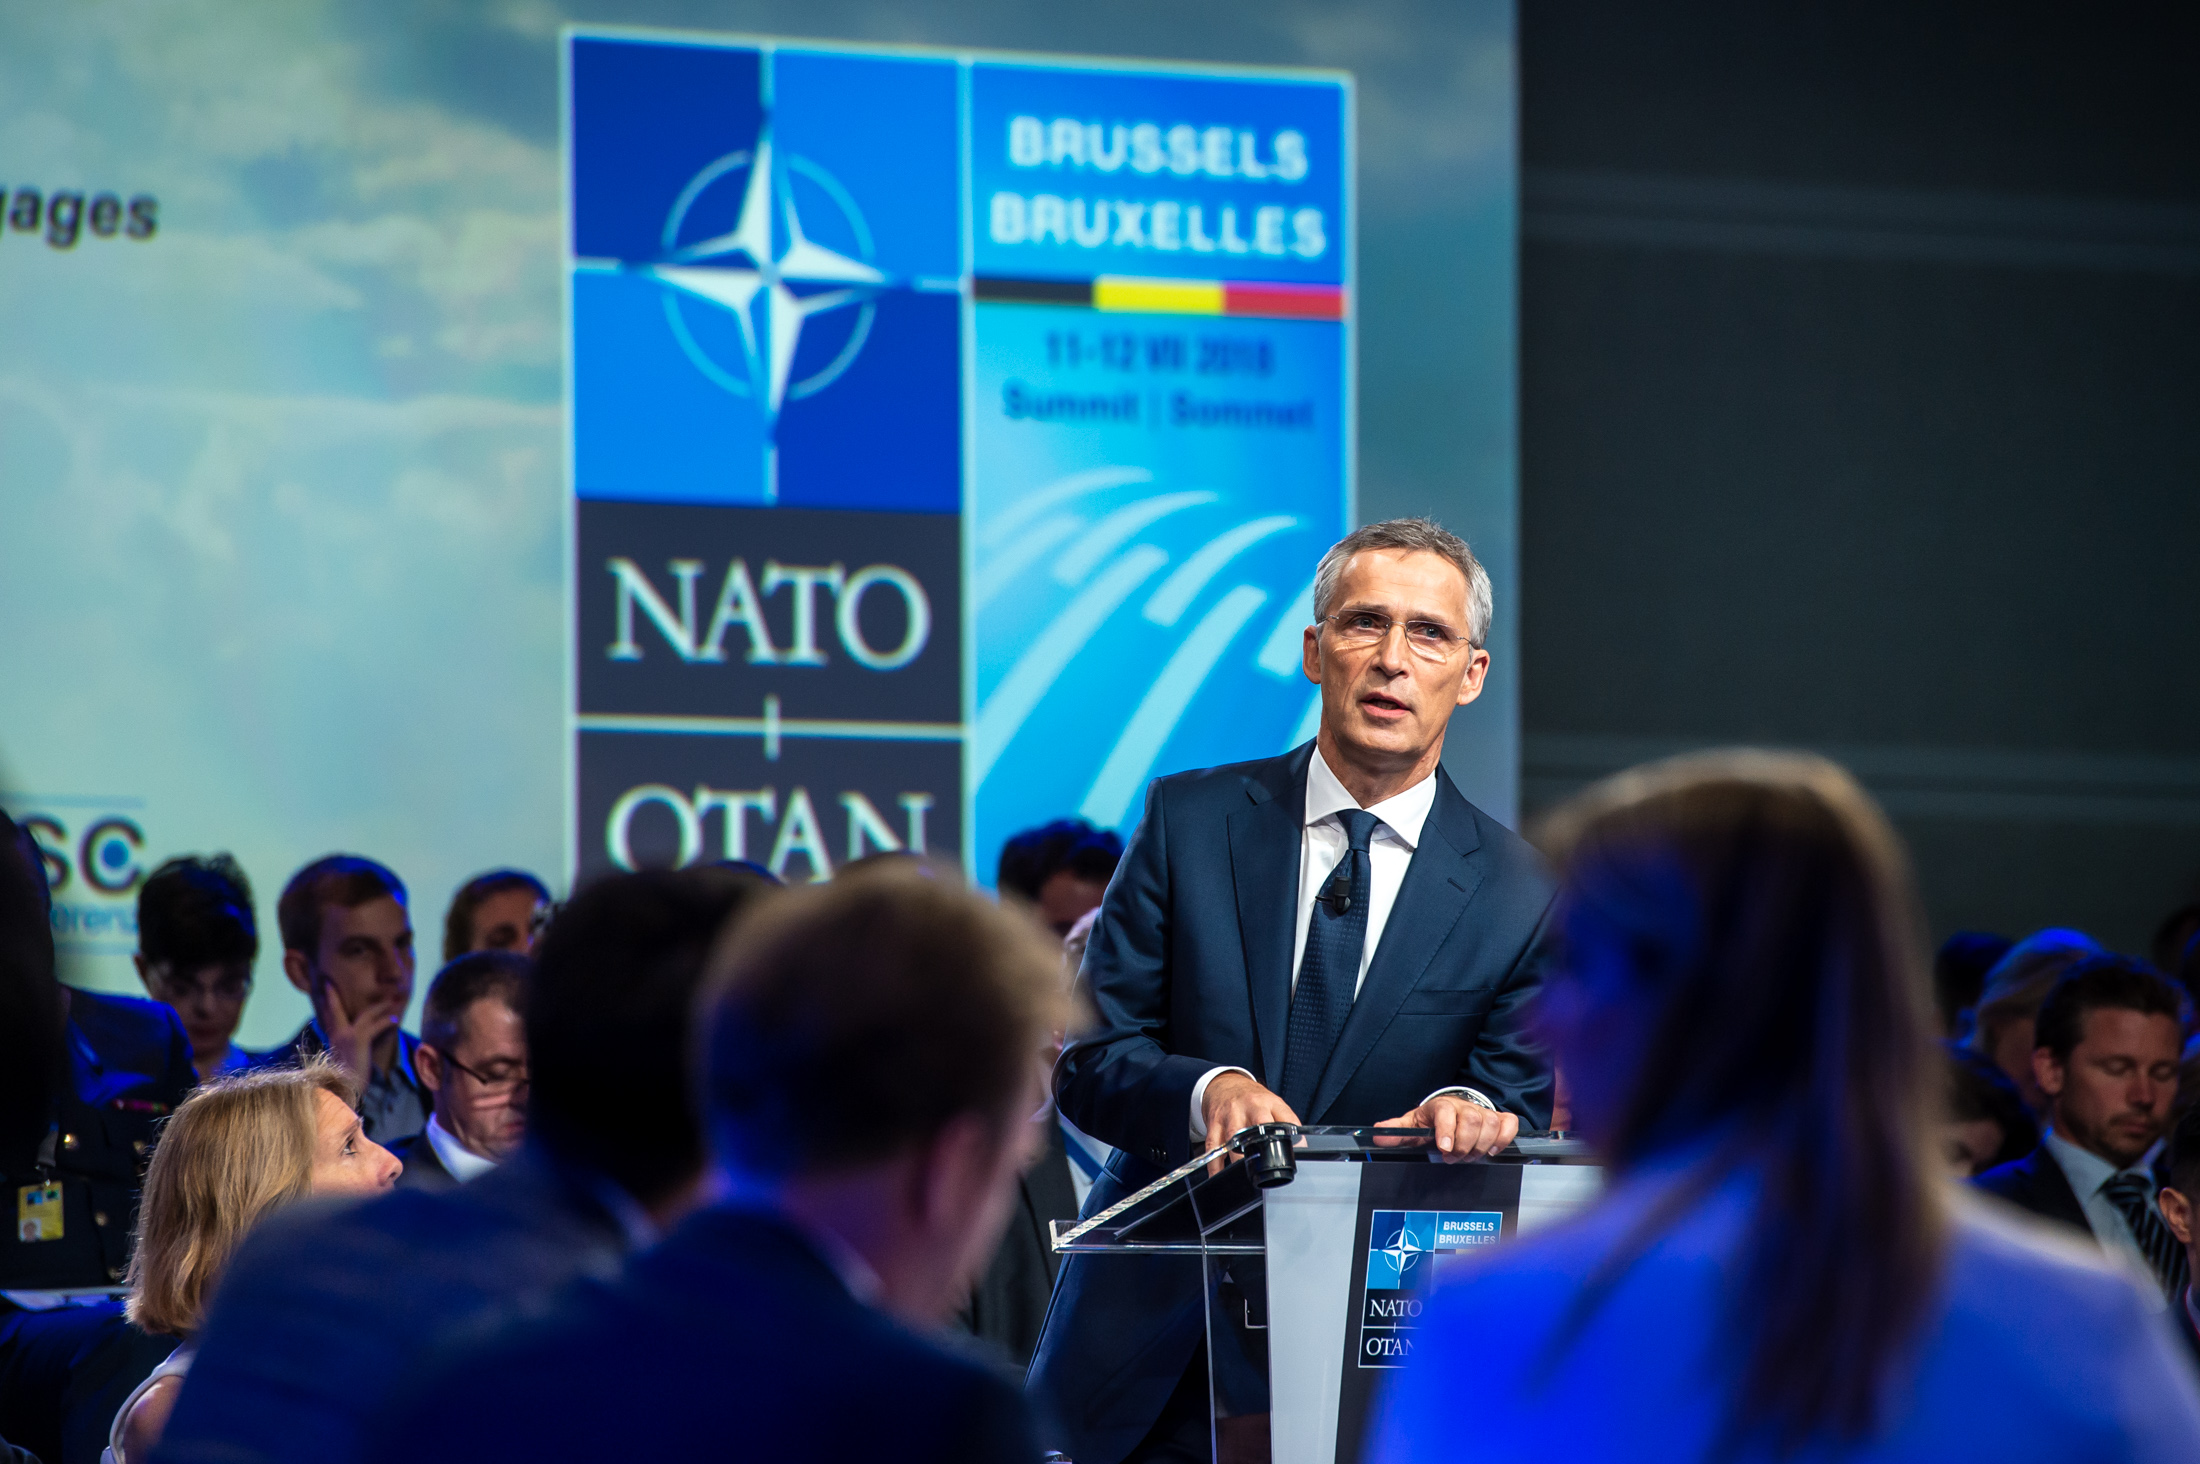 Address by NATO Secretary General Jens Stoltenberg at the Security Conference: NATO Engages - The Brussels Sumnmit Dialogue